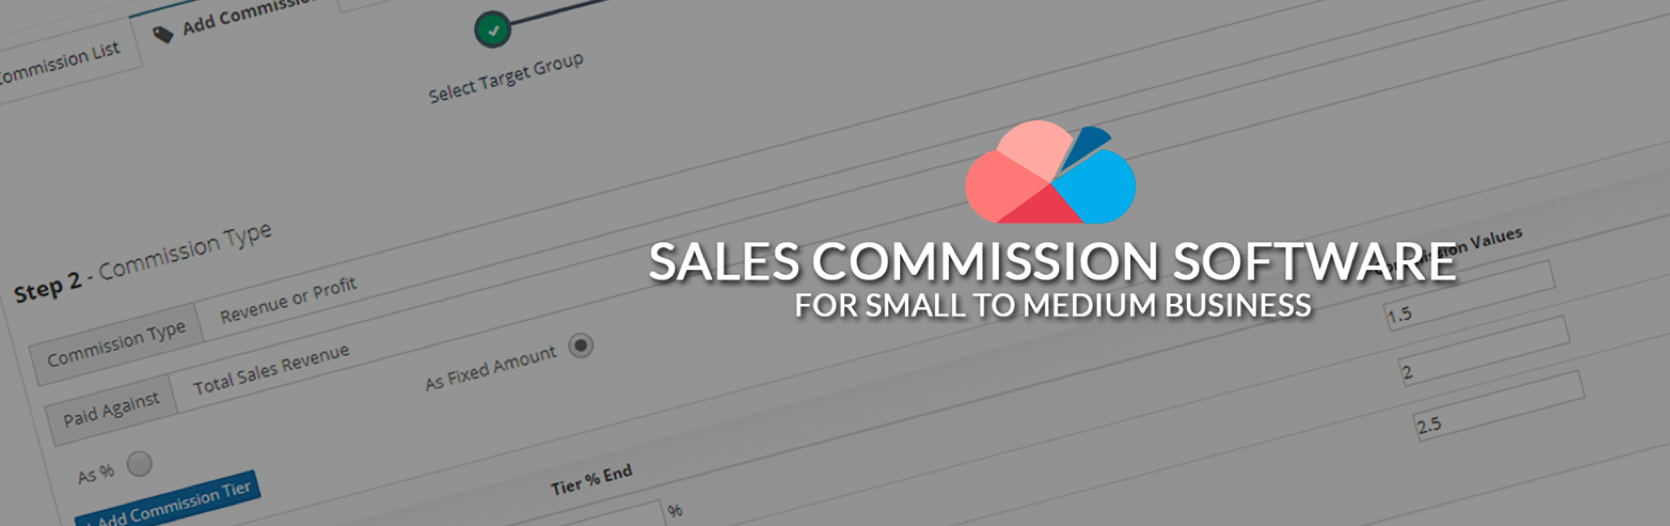 Commissionly - Sales Commission Software